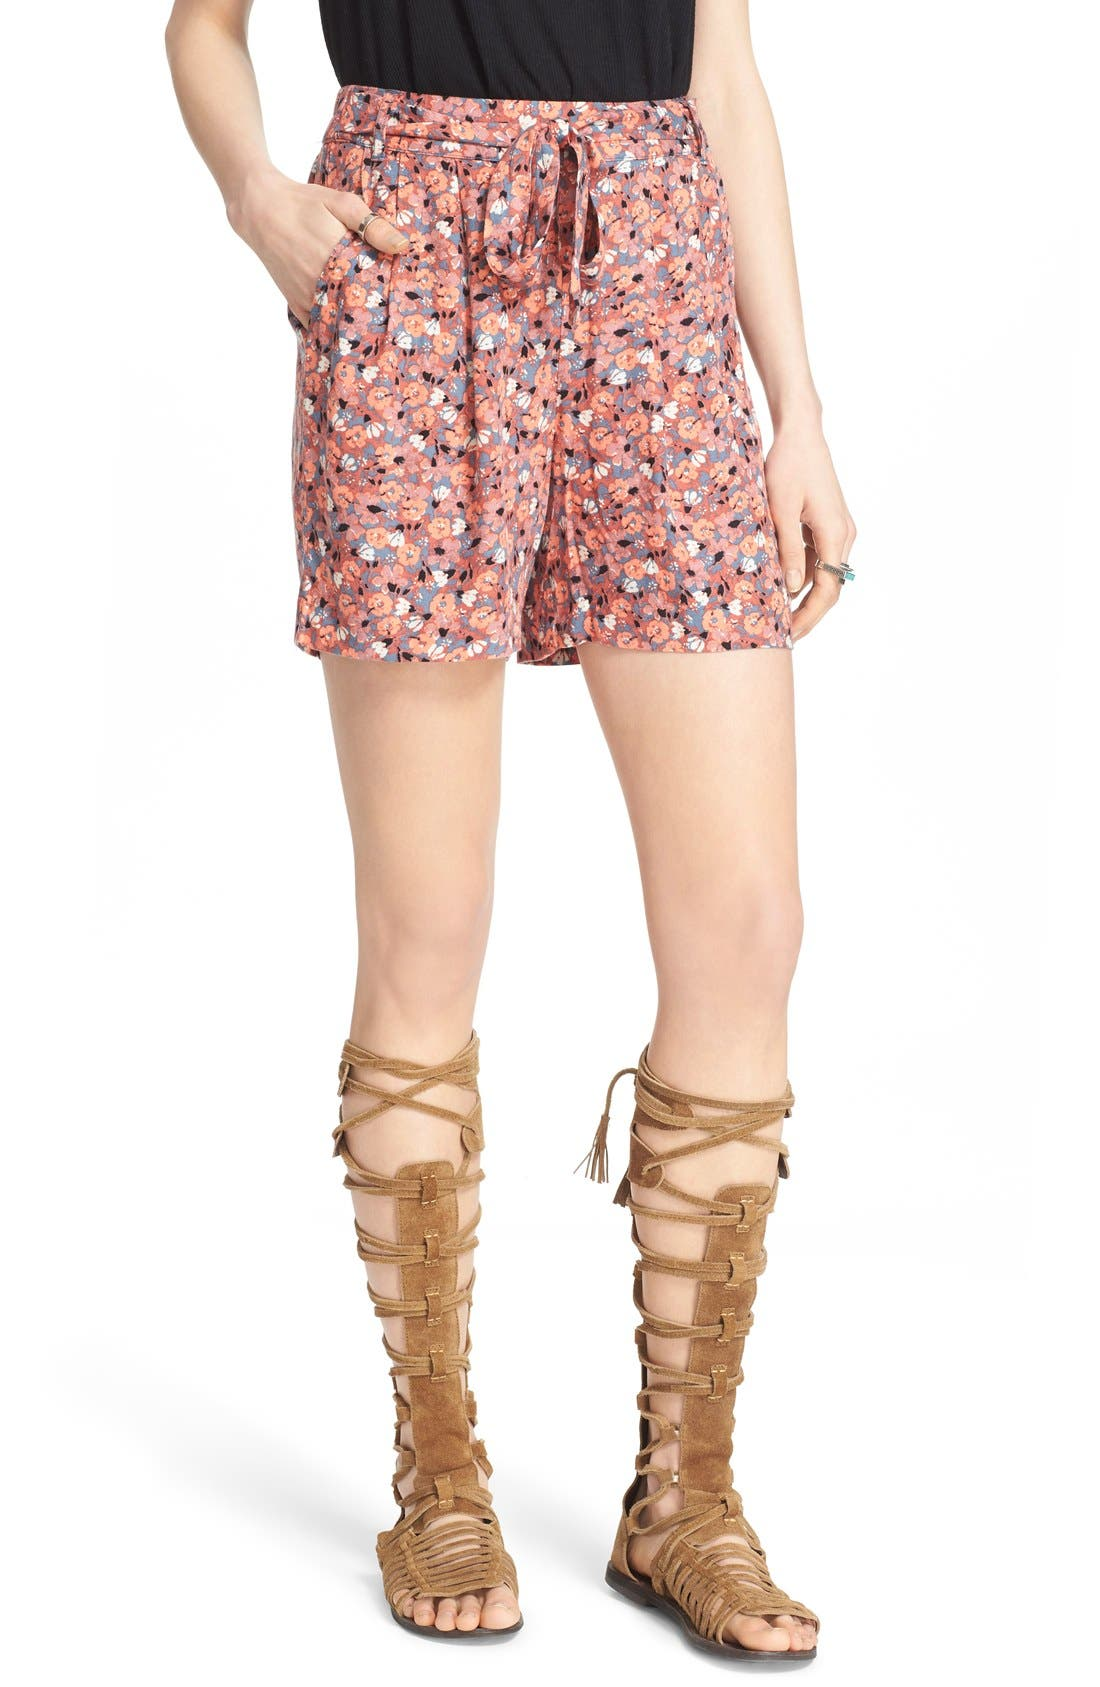 Alternate Image 1 Selected - Free People 'Layla' Floral Print Shorts